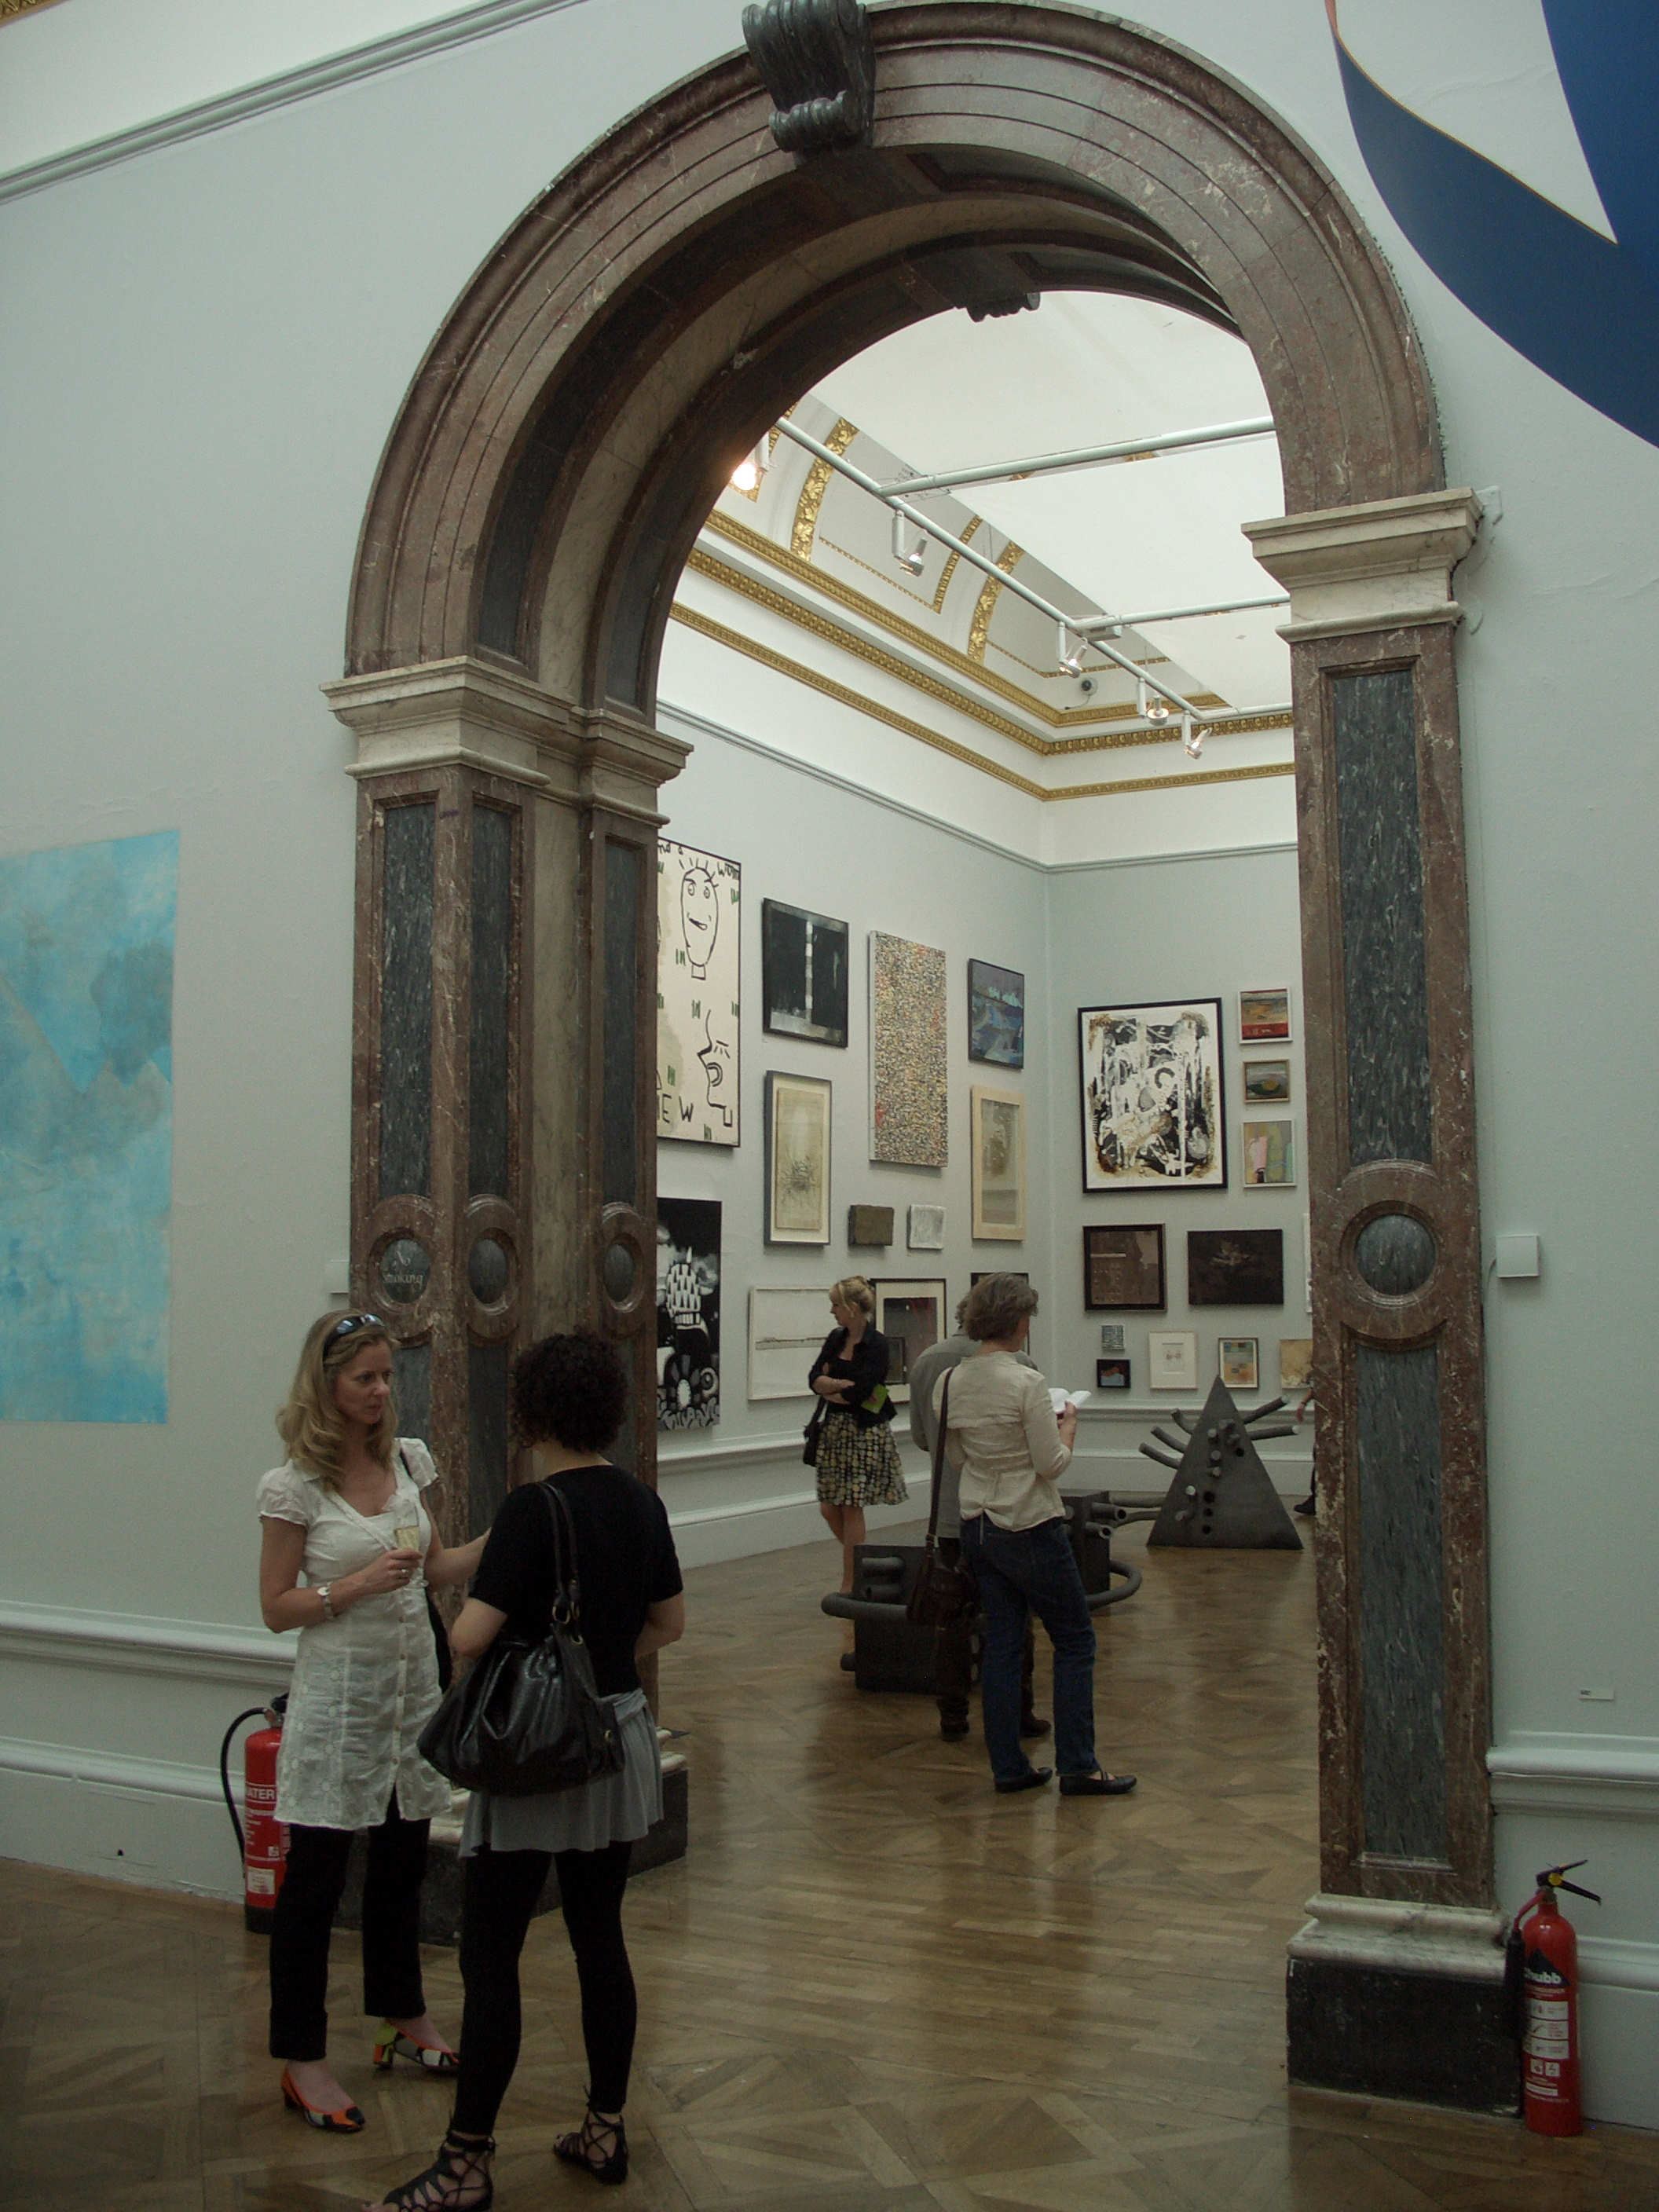 Framed by the gallery's marble arches